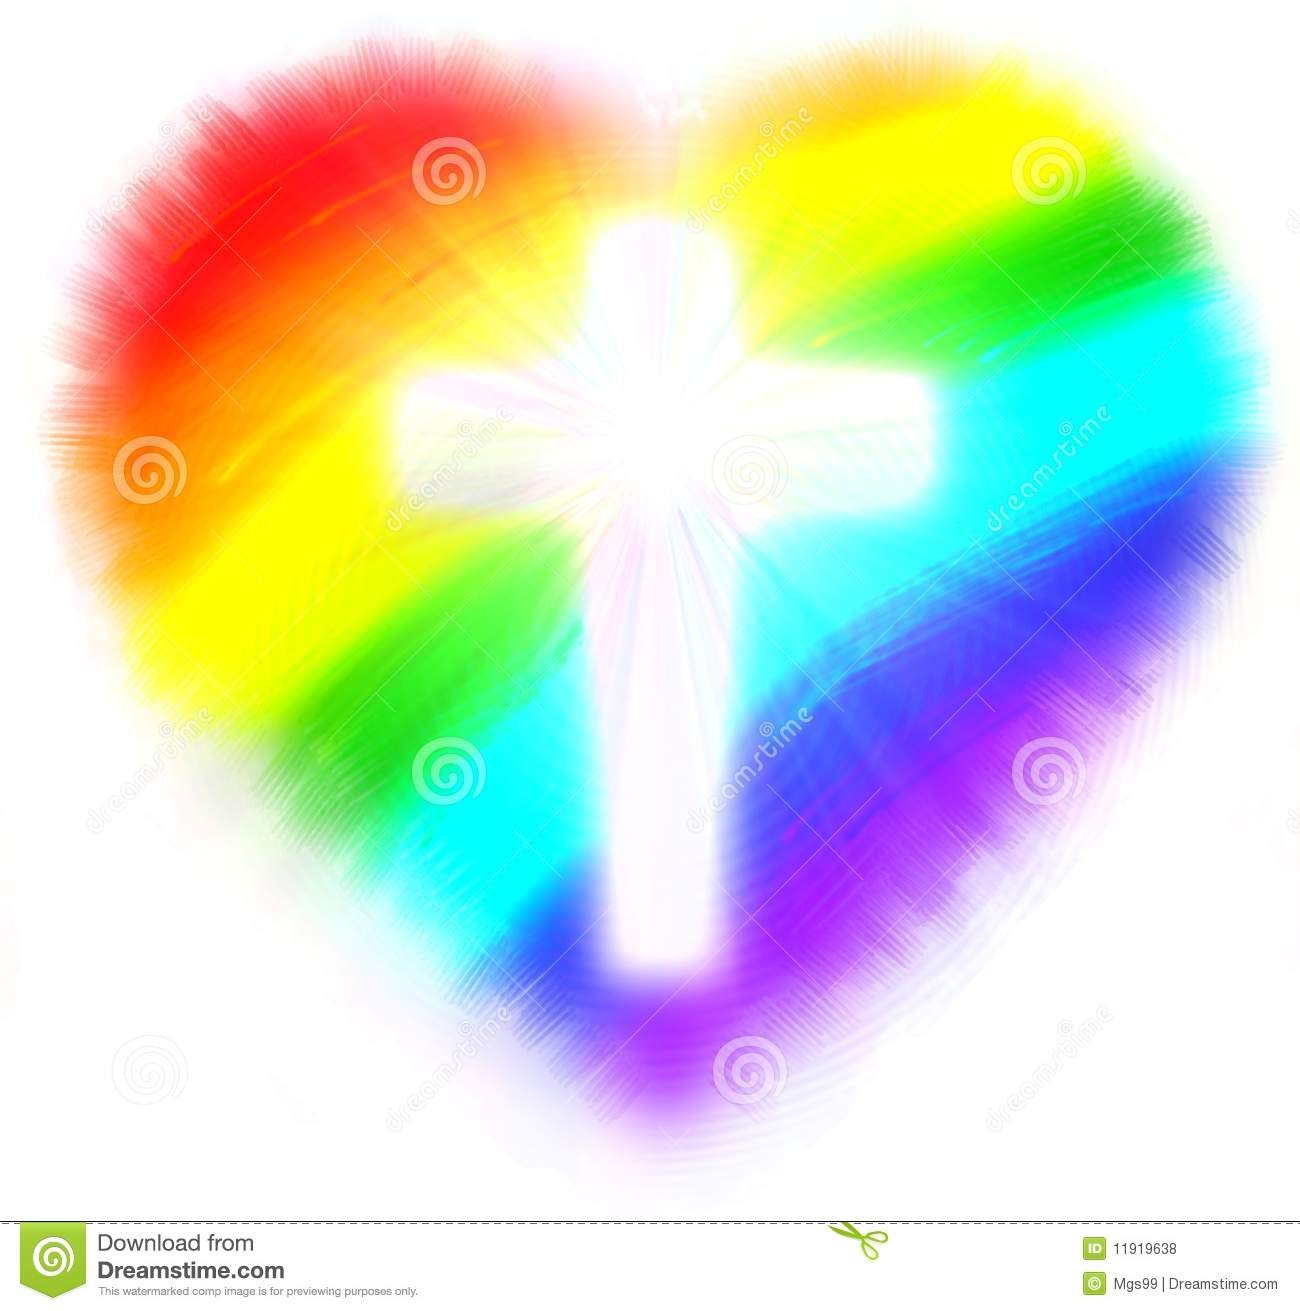 Rainbow Hearts Clipart rainbow heart stock photos, images, & pictures ...